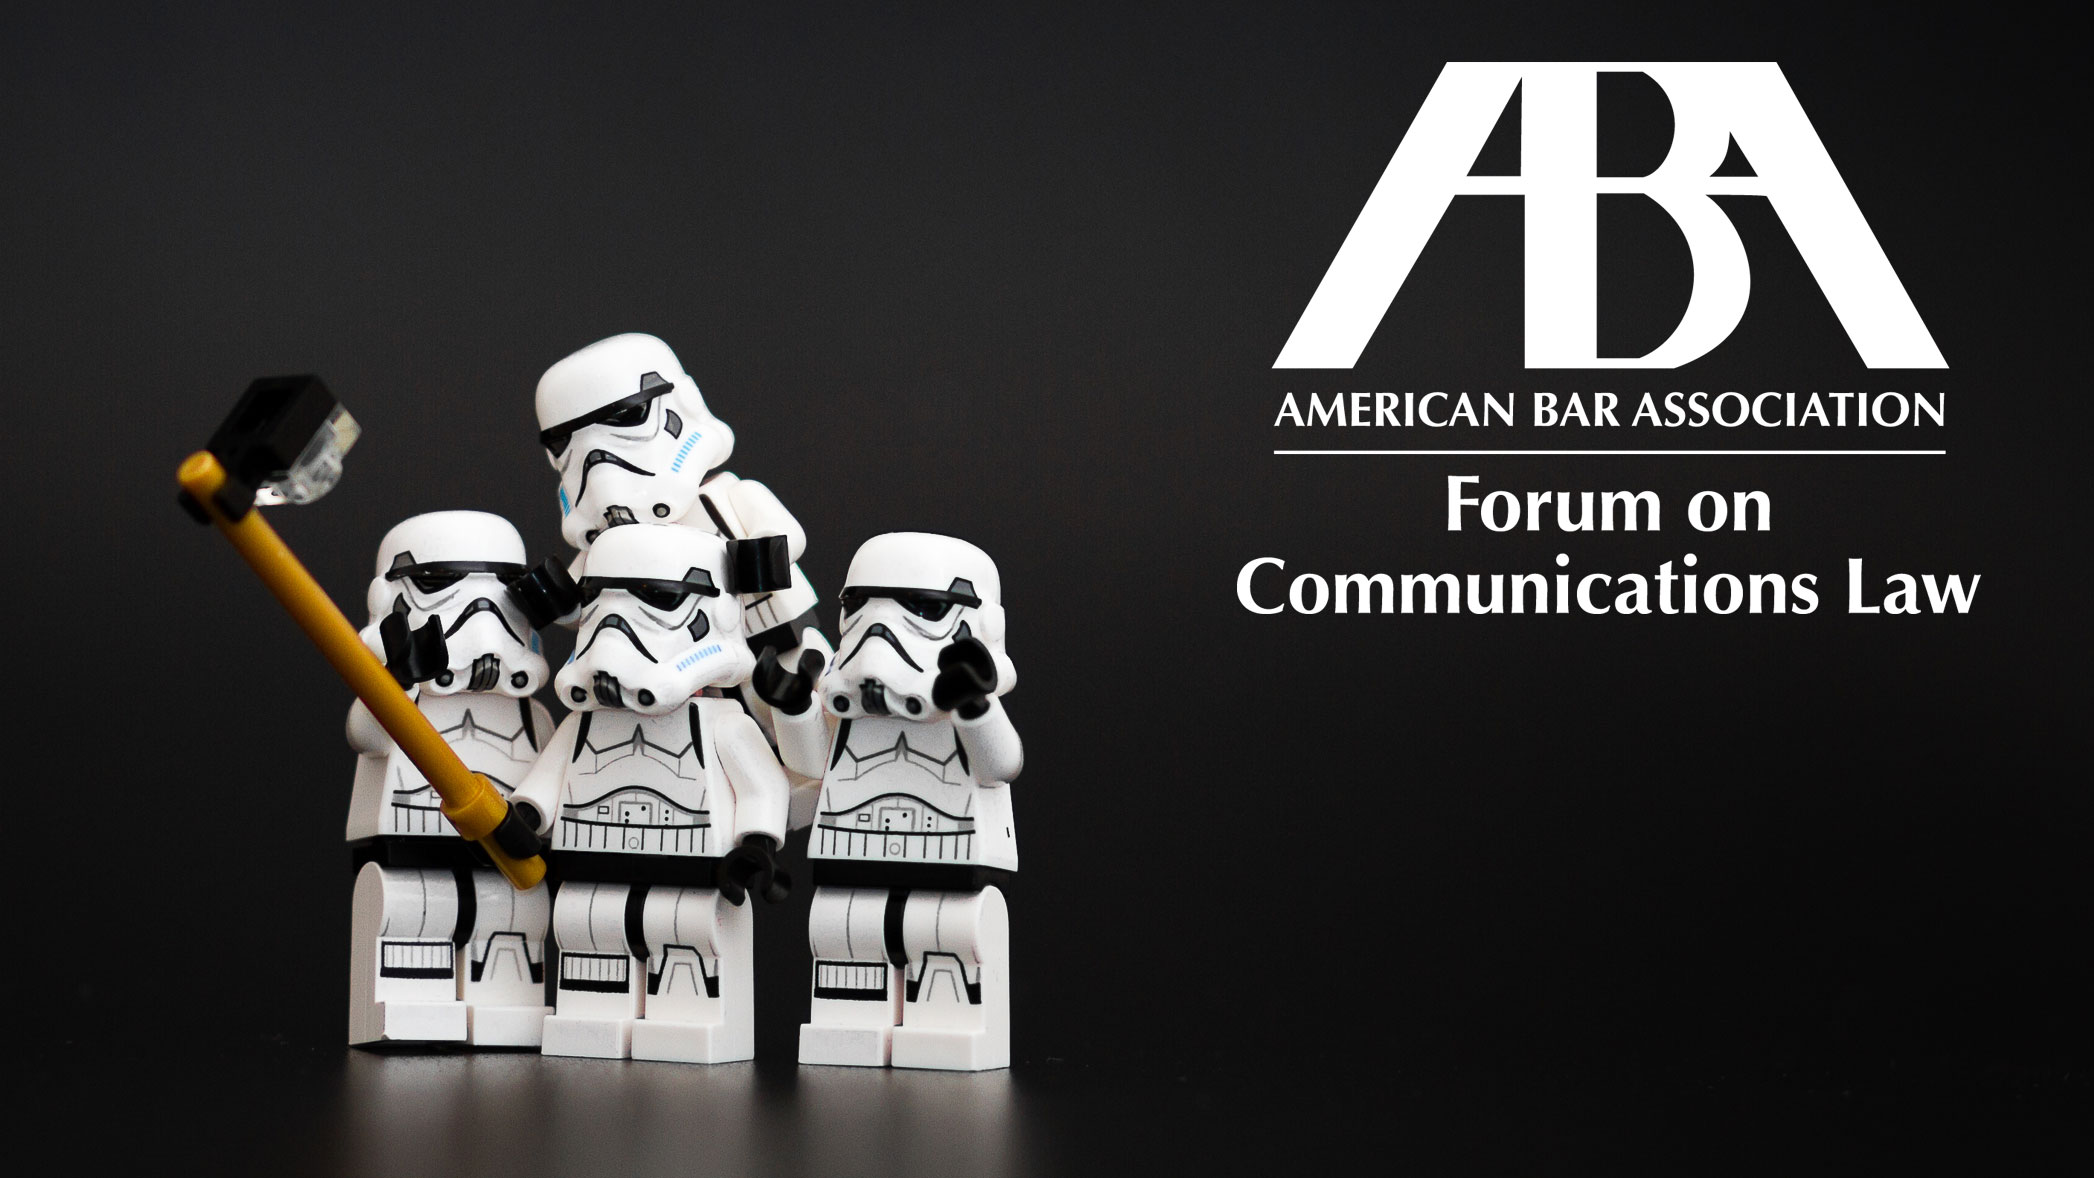 ABA Forum on Communications Law